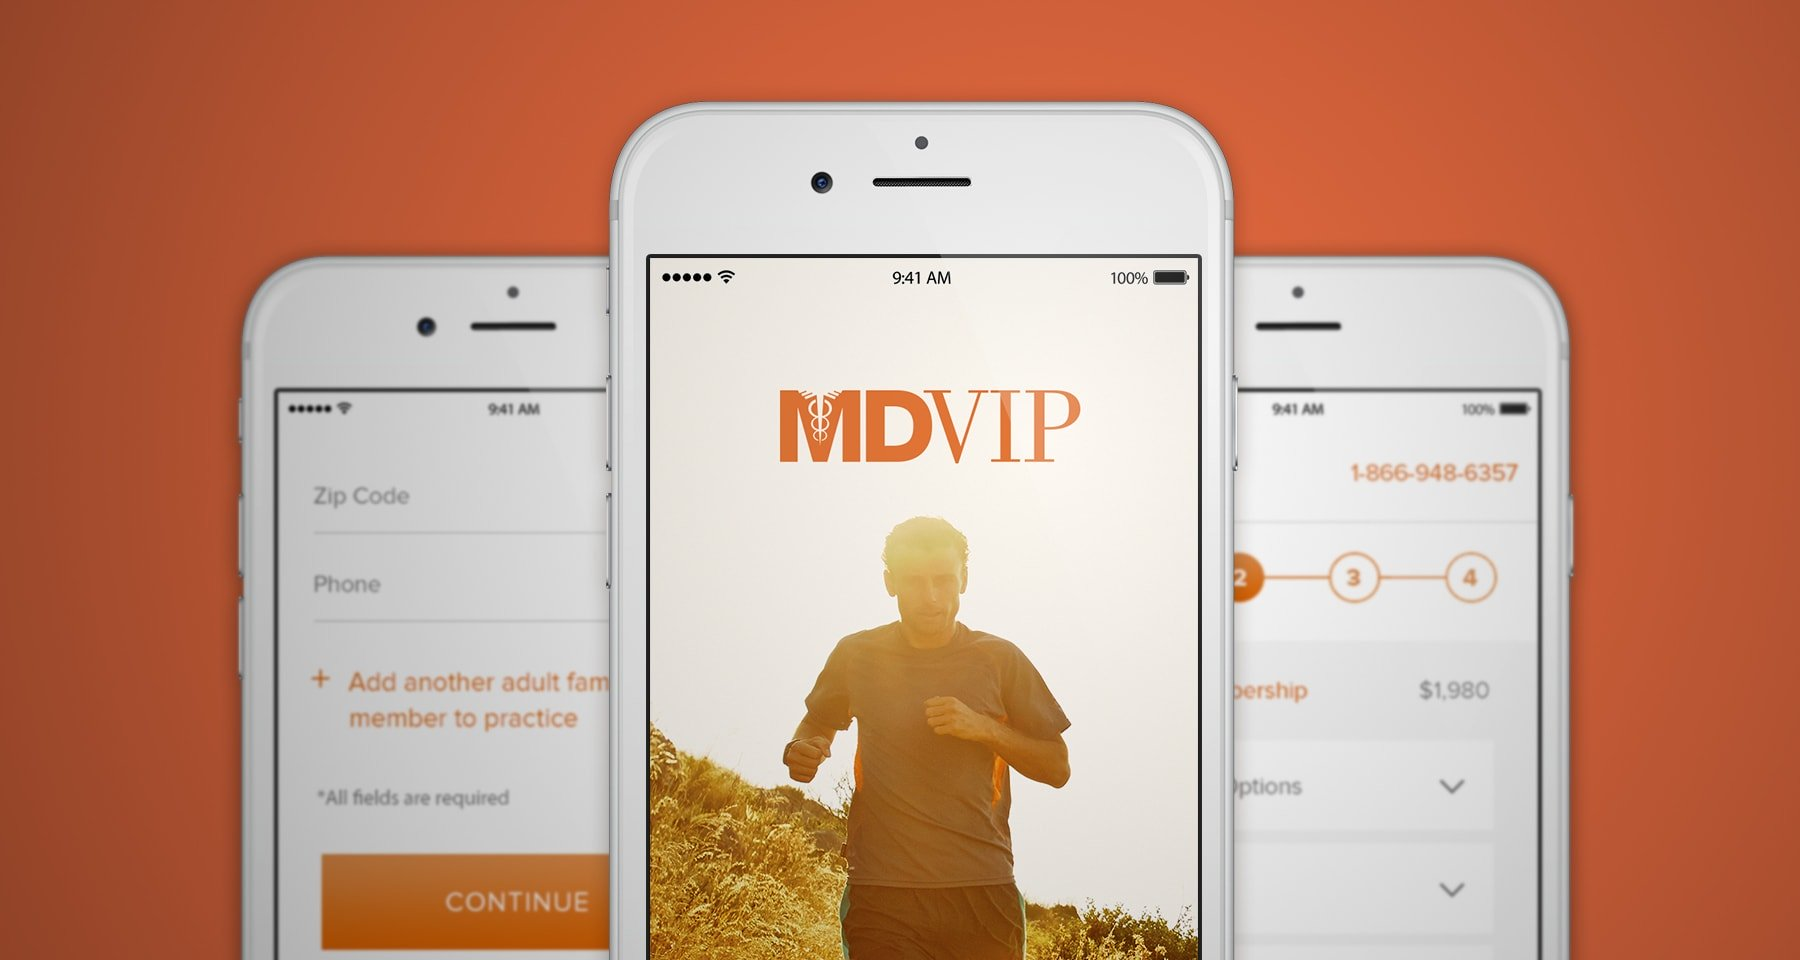 MDVIP brand awareness mobile experience